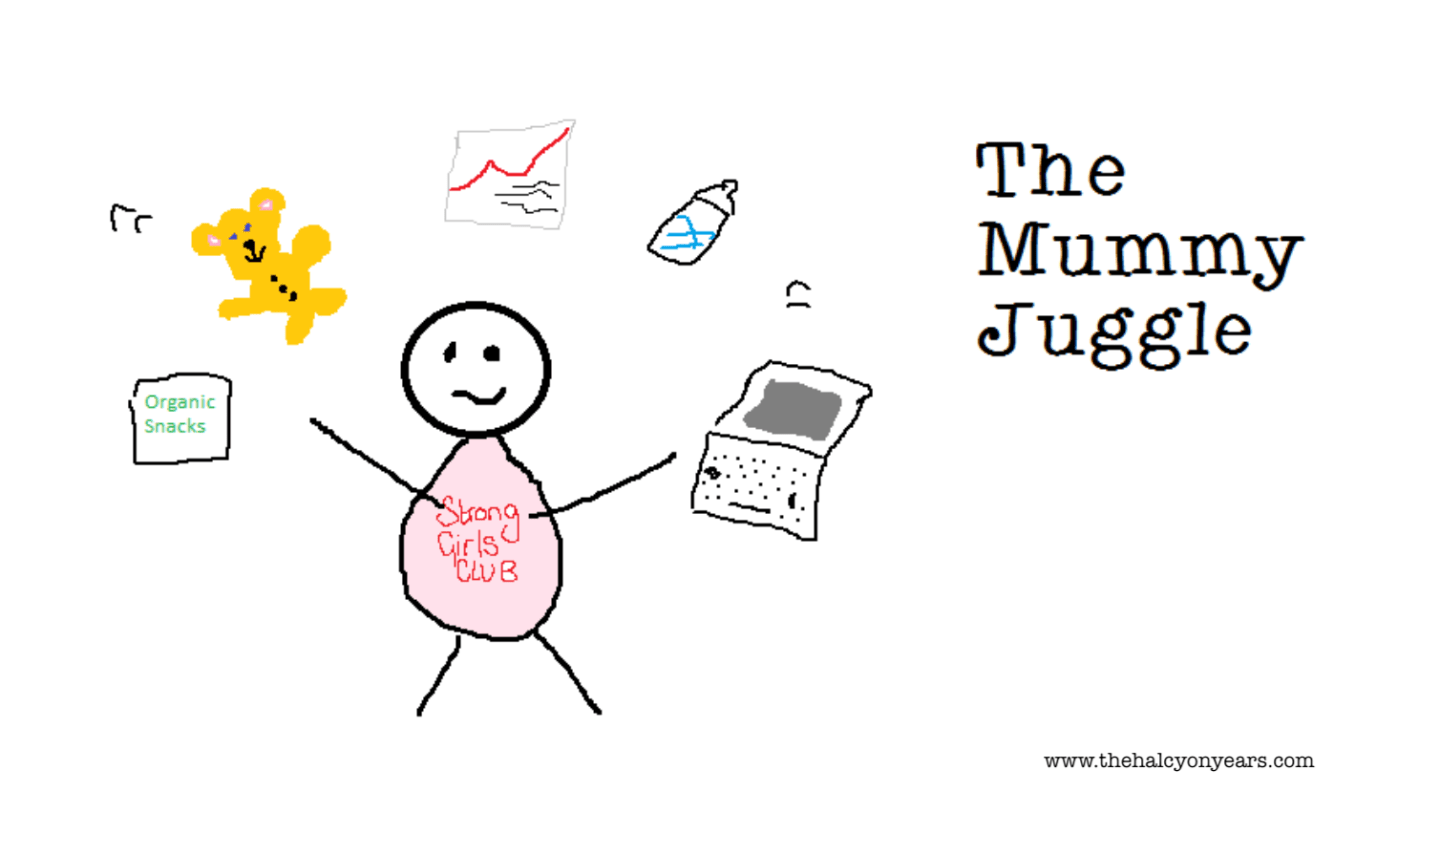 The Mummy Juggle Guest Post series for Mums to chat about how they juggle the day to day tasks of life, work and parenting (featuring stick woman juggling work and baby objects